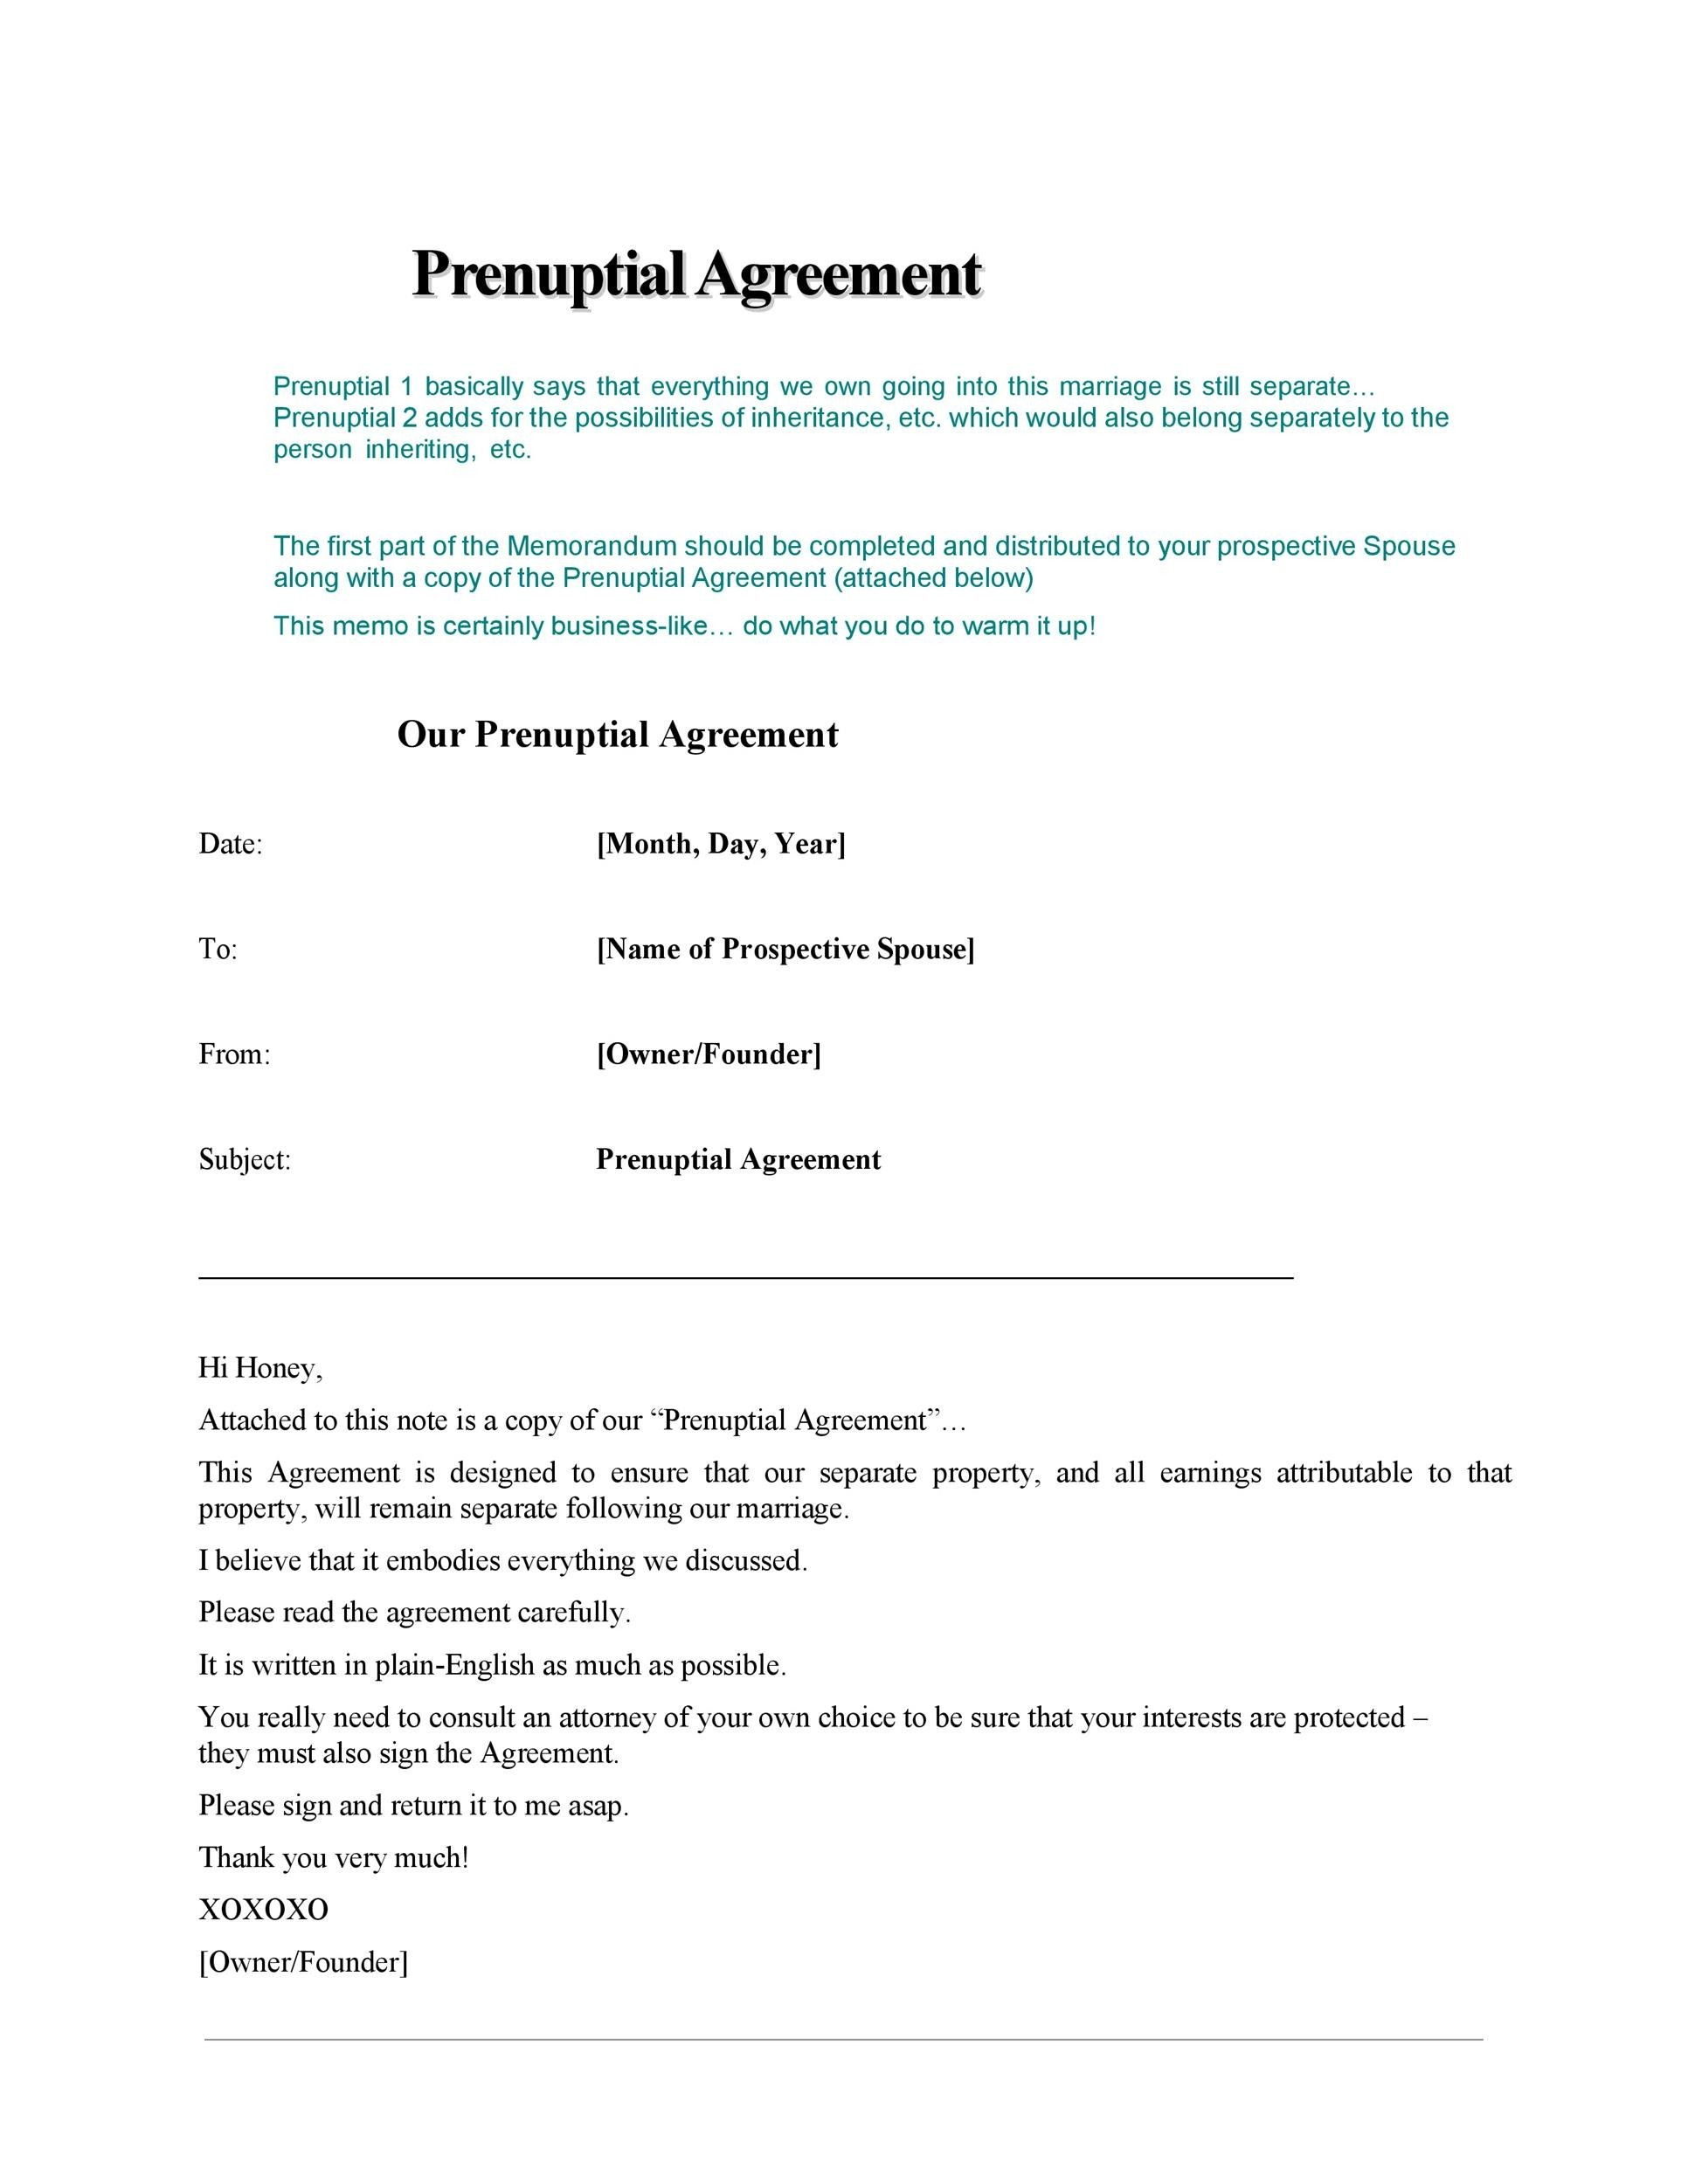 prenup agreement sample